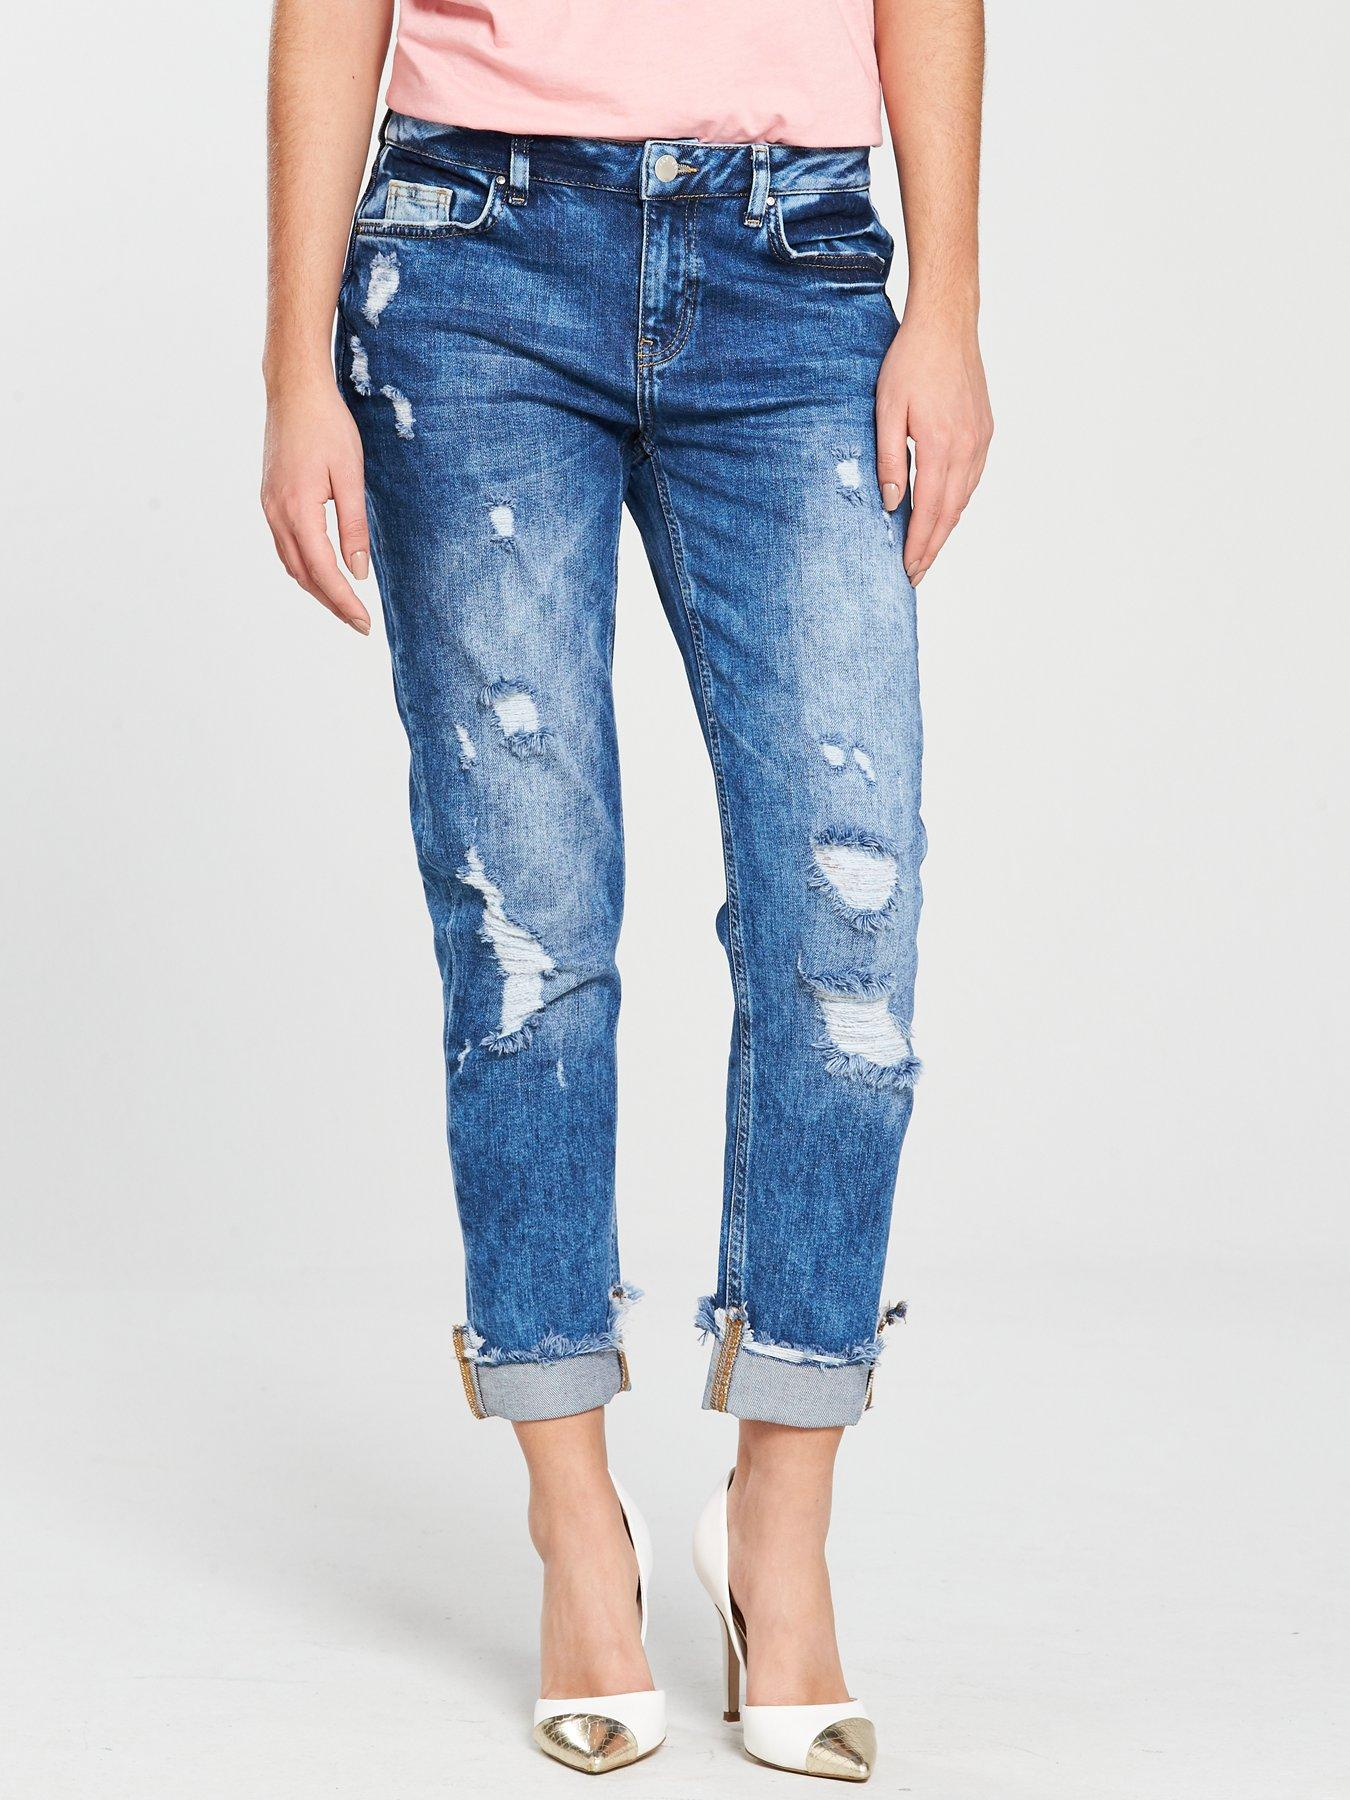 Sale Women Littlewoods Jeans Cheap Ireland Clearance OpqcxPWEwf